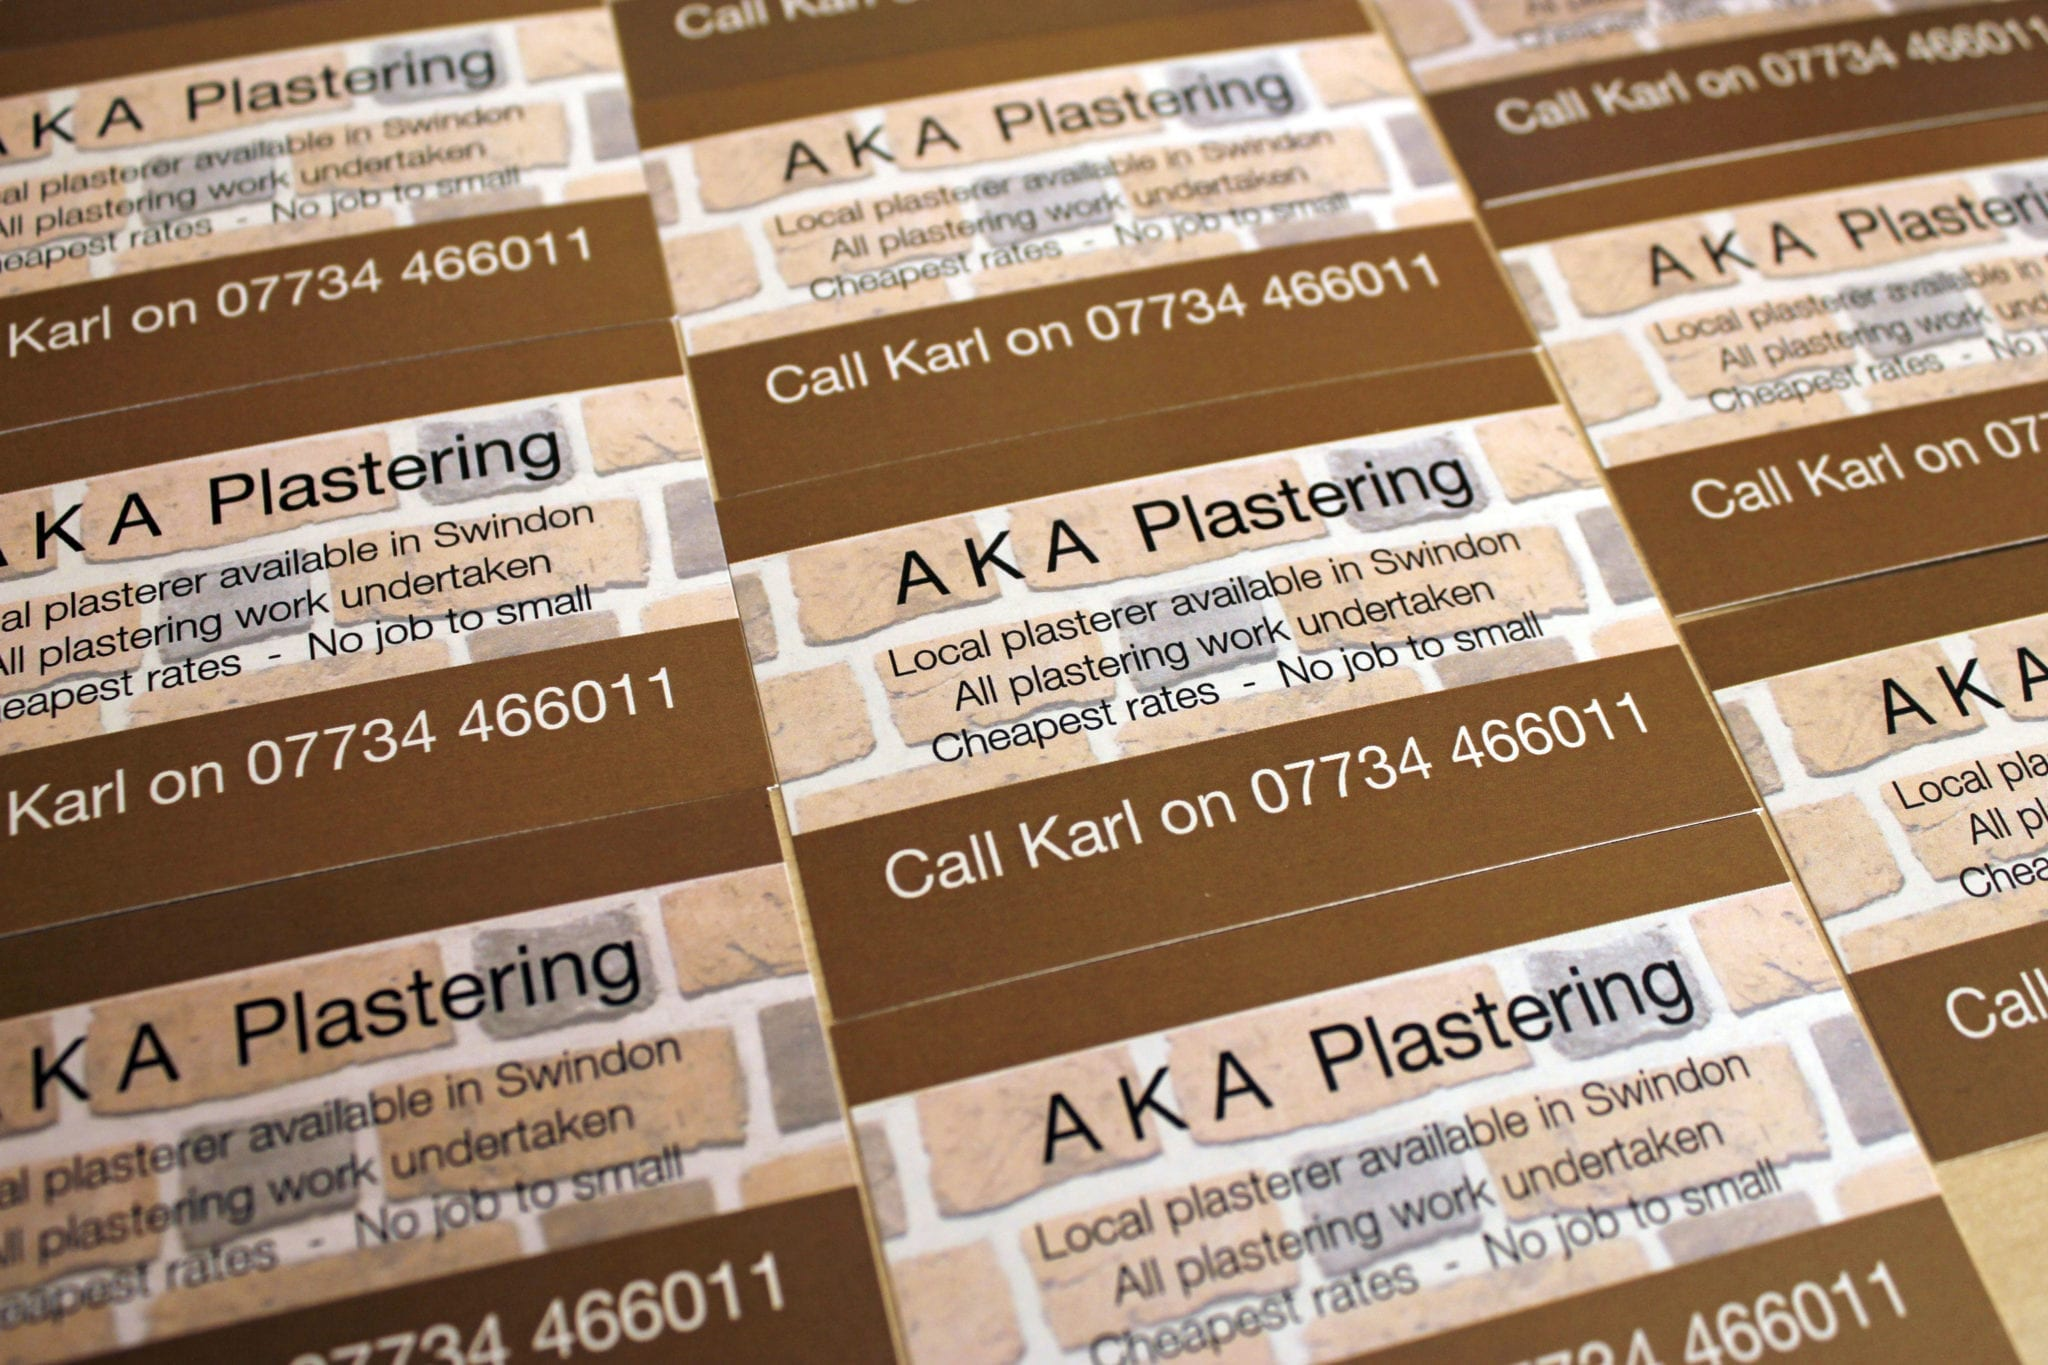 business-cards-for-aka-plastering-in-swindon.jpg